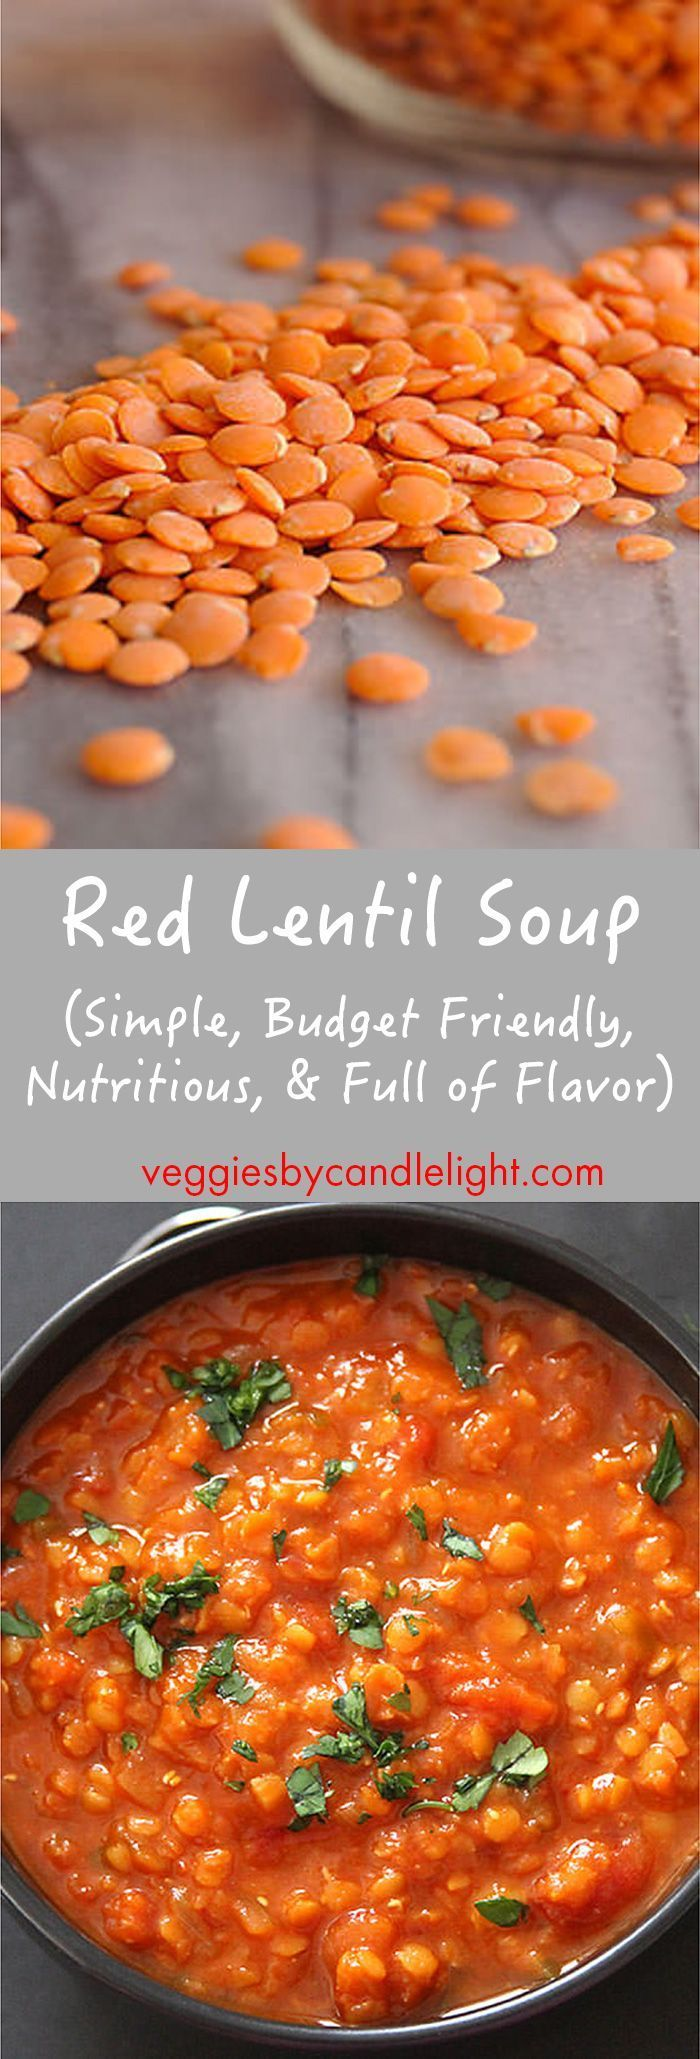 ... Curried Lentil Soup on Pinterest | Lentil Soup, Soups and Lentils